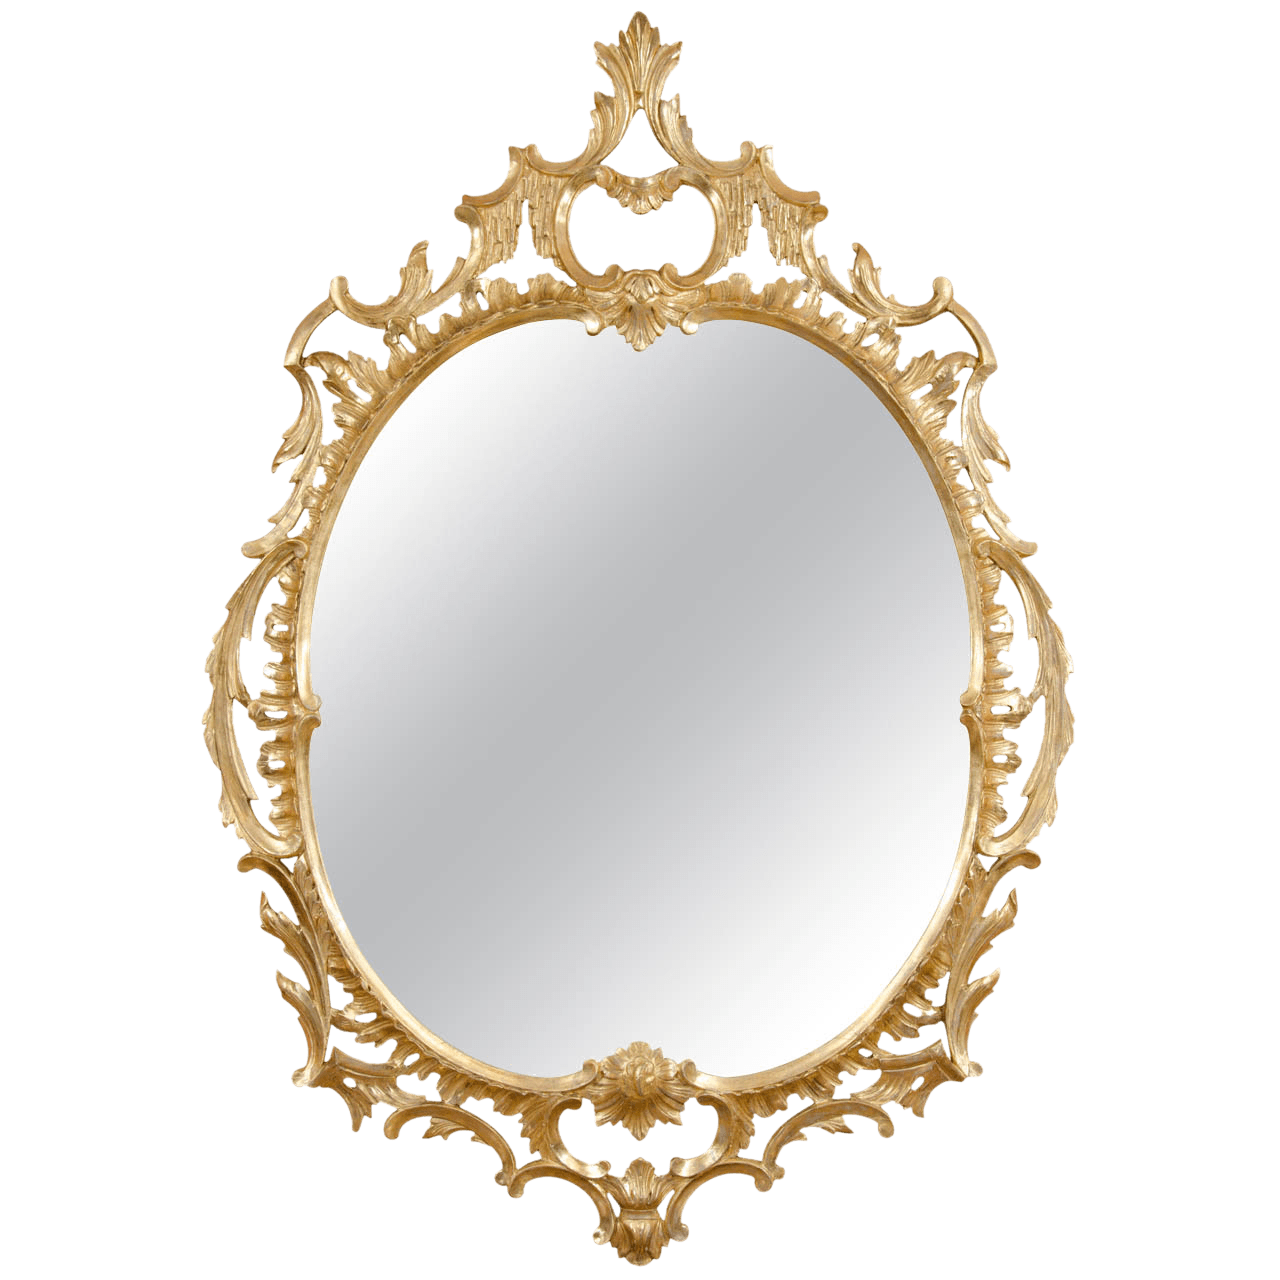 Oval gold frame png. Mirror simple transparent stickpng